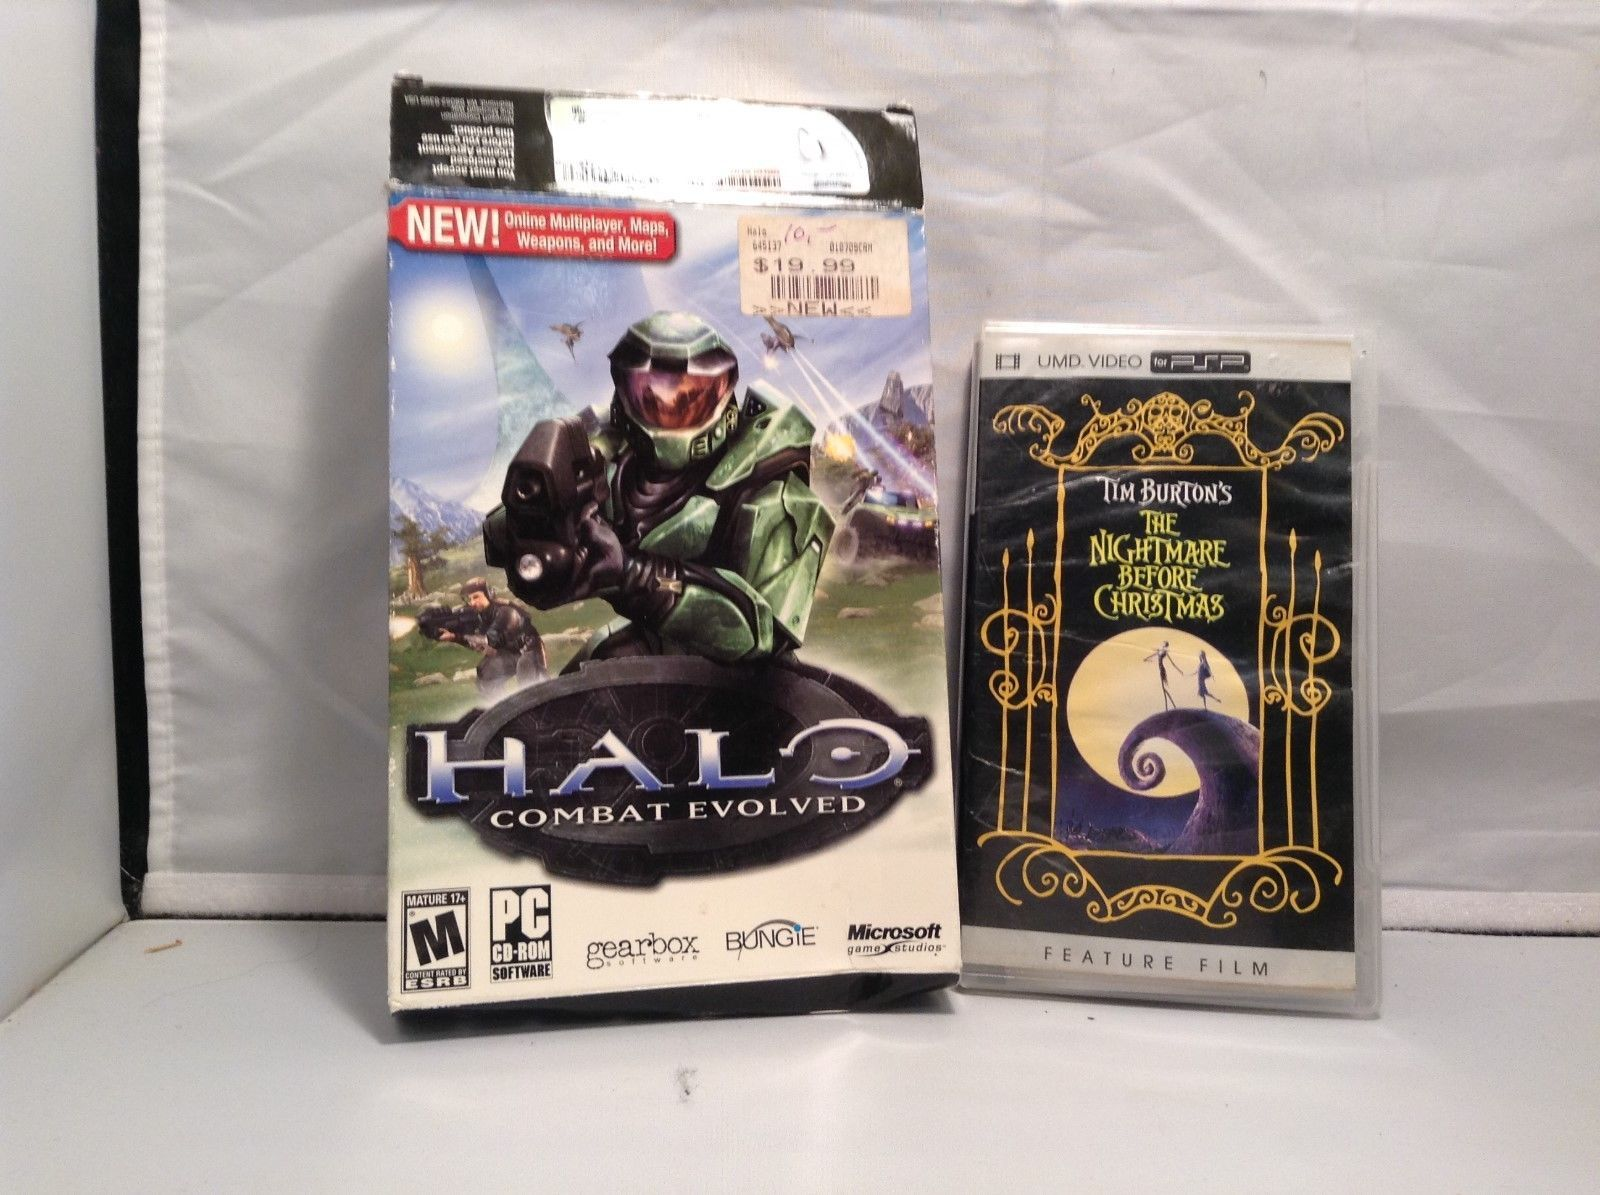 HALO Combat Evolve for PC and Nightmare Before X-Mas for PSP